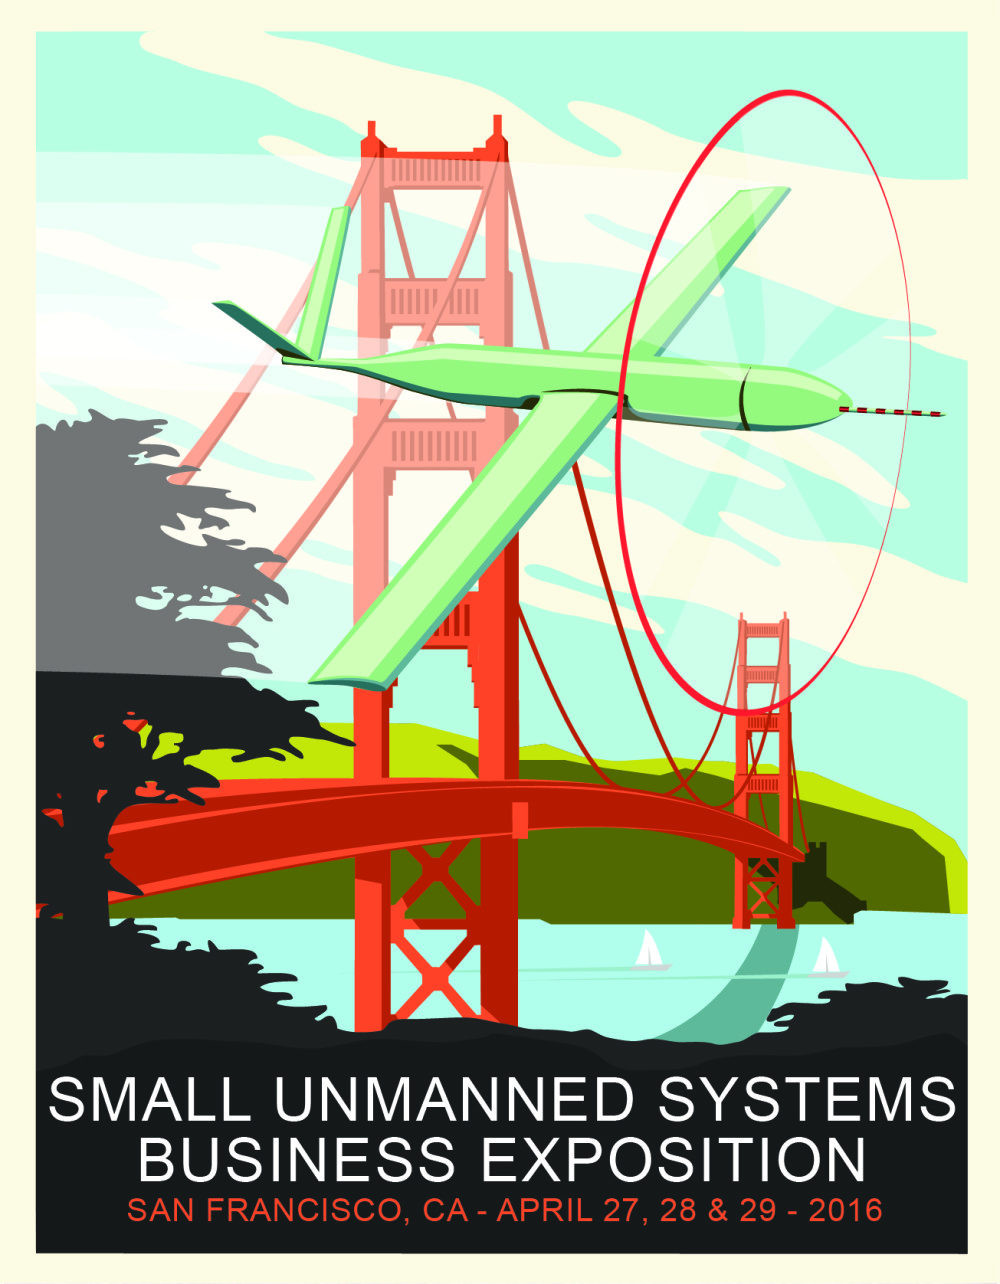 Small Unmanned Business Systems Expo